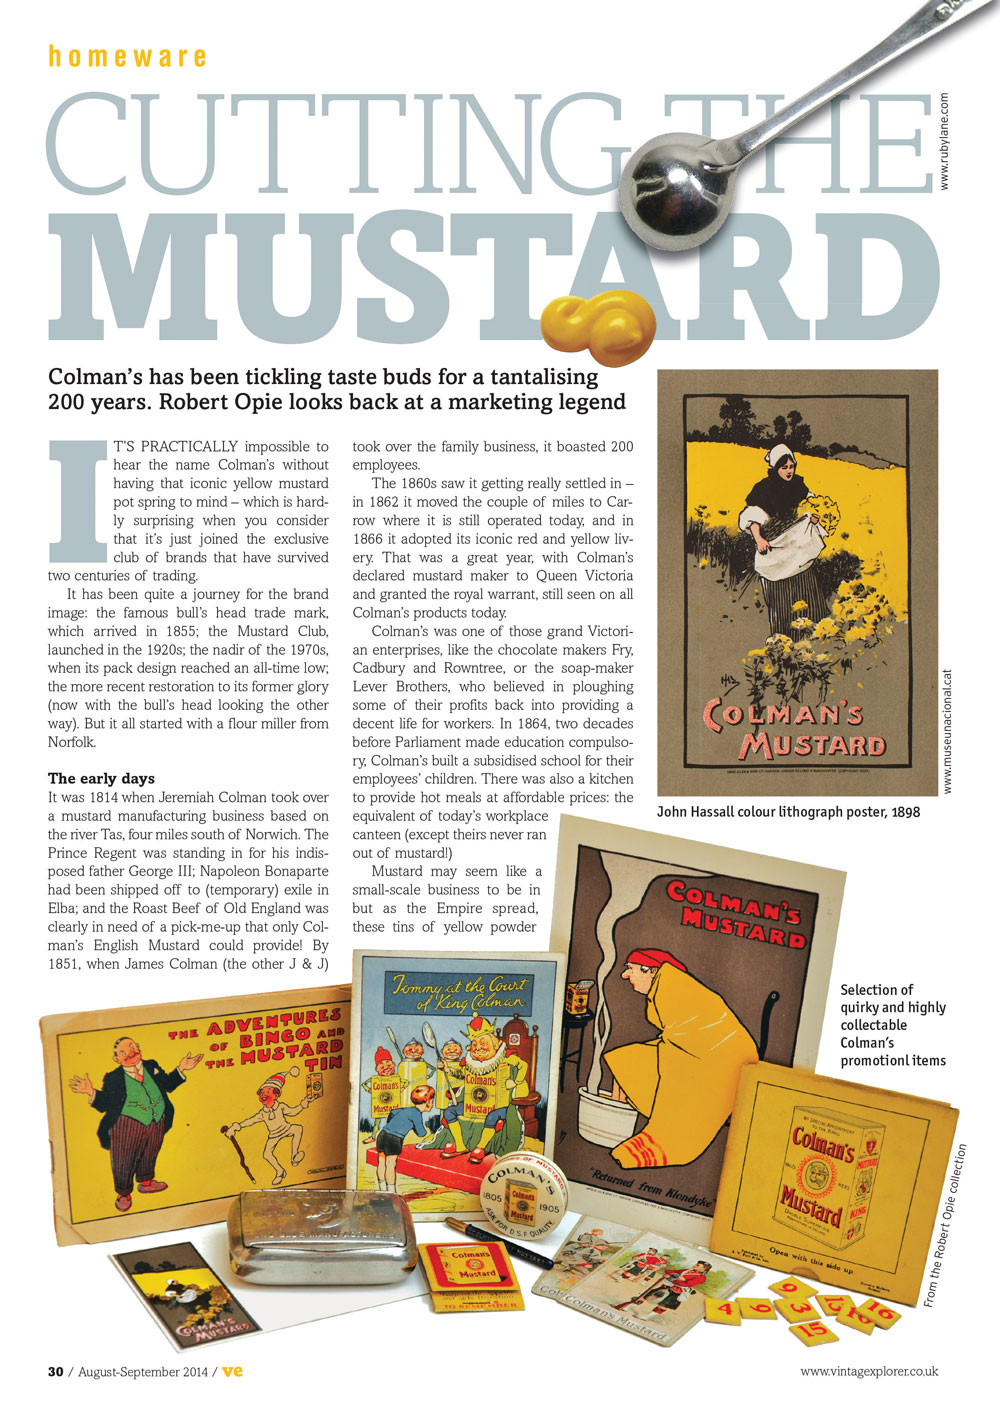 ISSUE 17 - AUG/SEPT 2014 - MUSTARD Coleman's has been tickling taste buds for a tantalising 200 years. Robert Opie looks back at a marketing legend